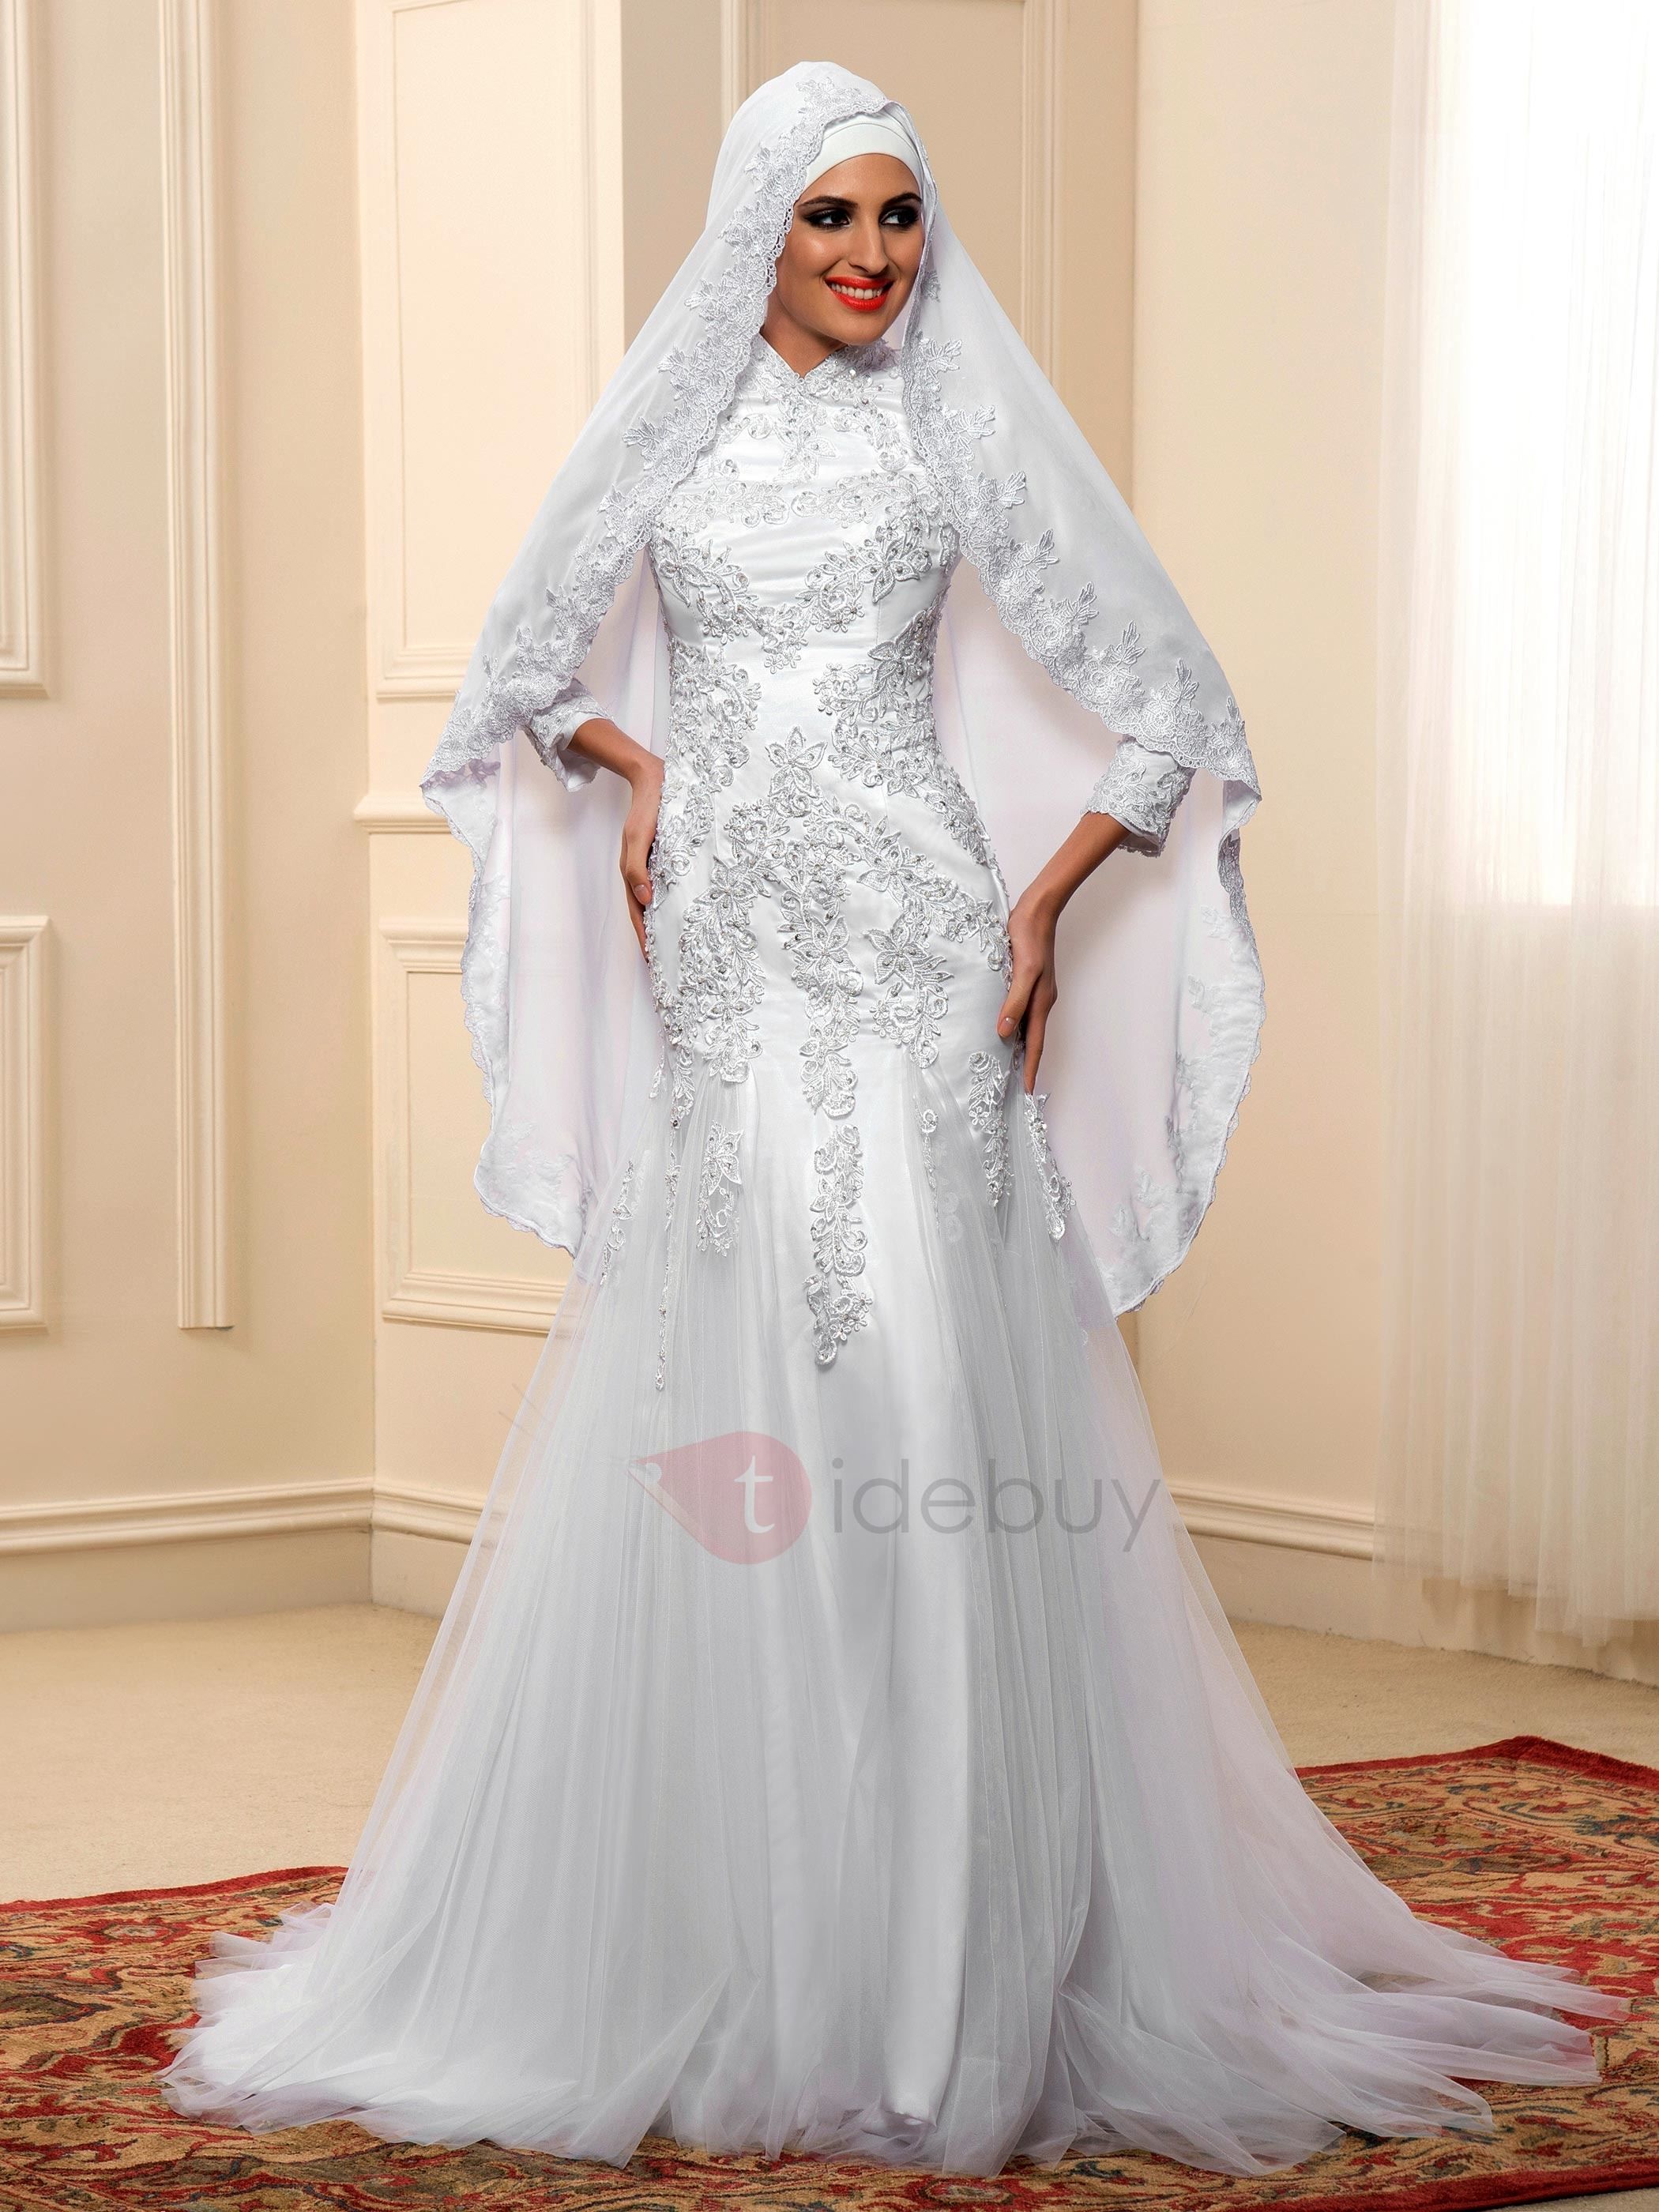 Appliques Sequins High Neck Muslim Wedding Dress : Tidebuy.com